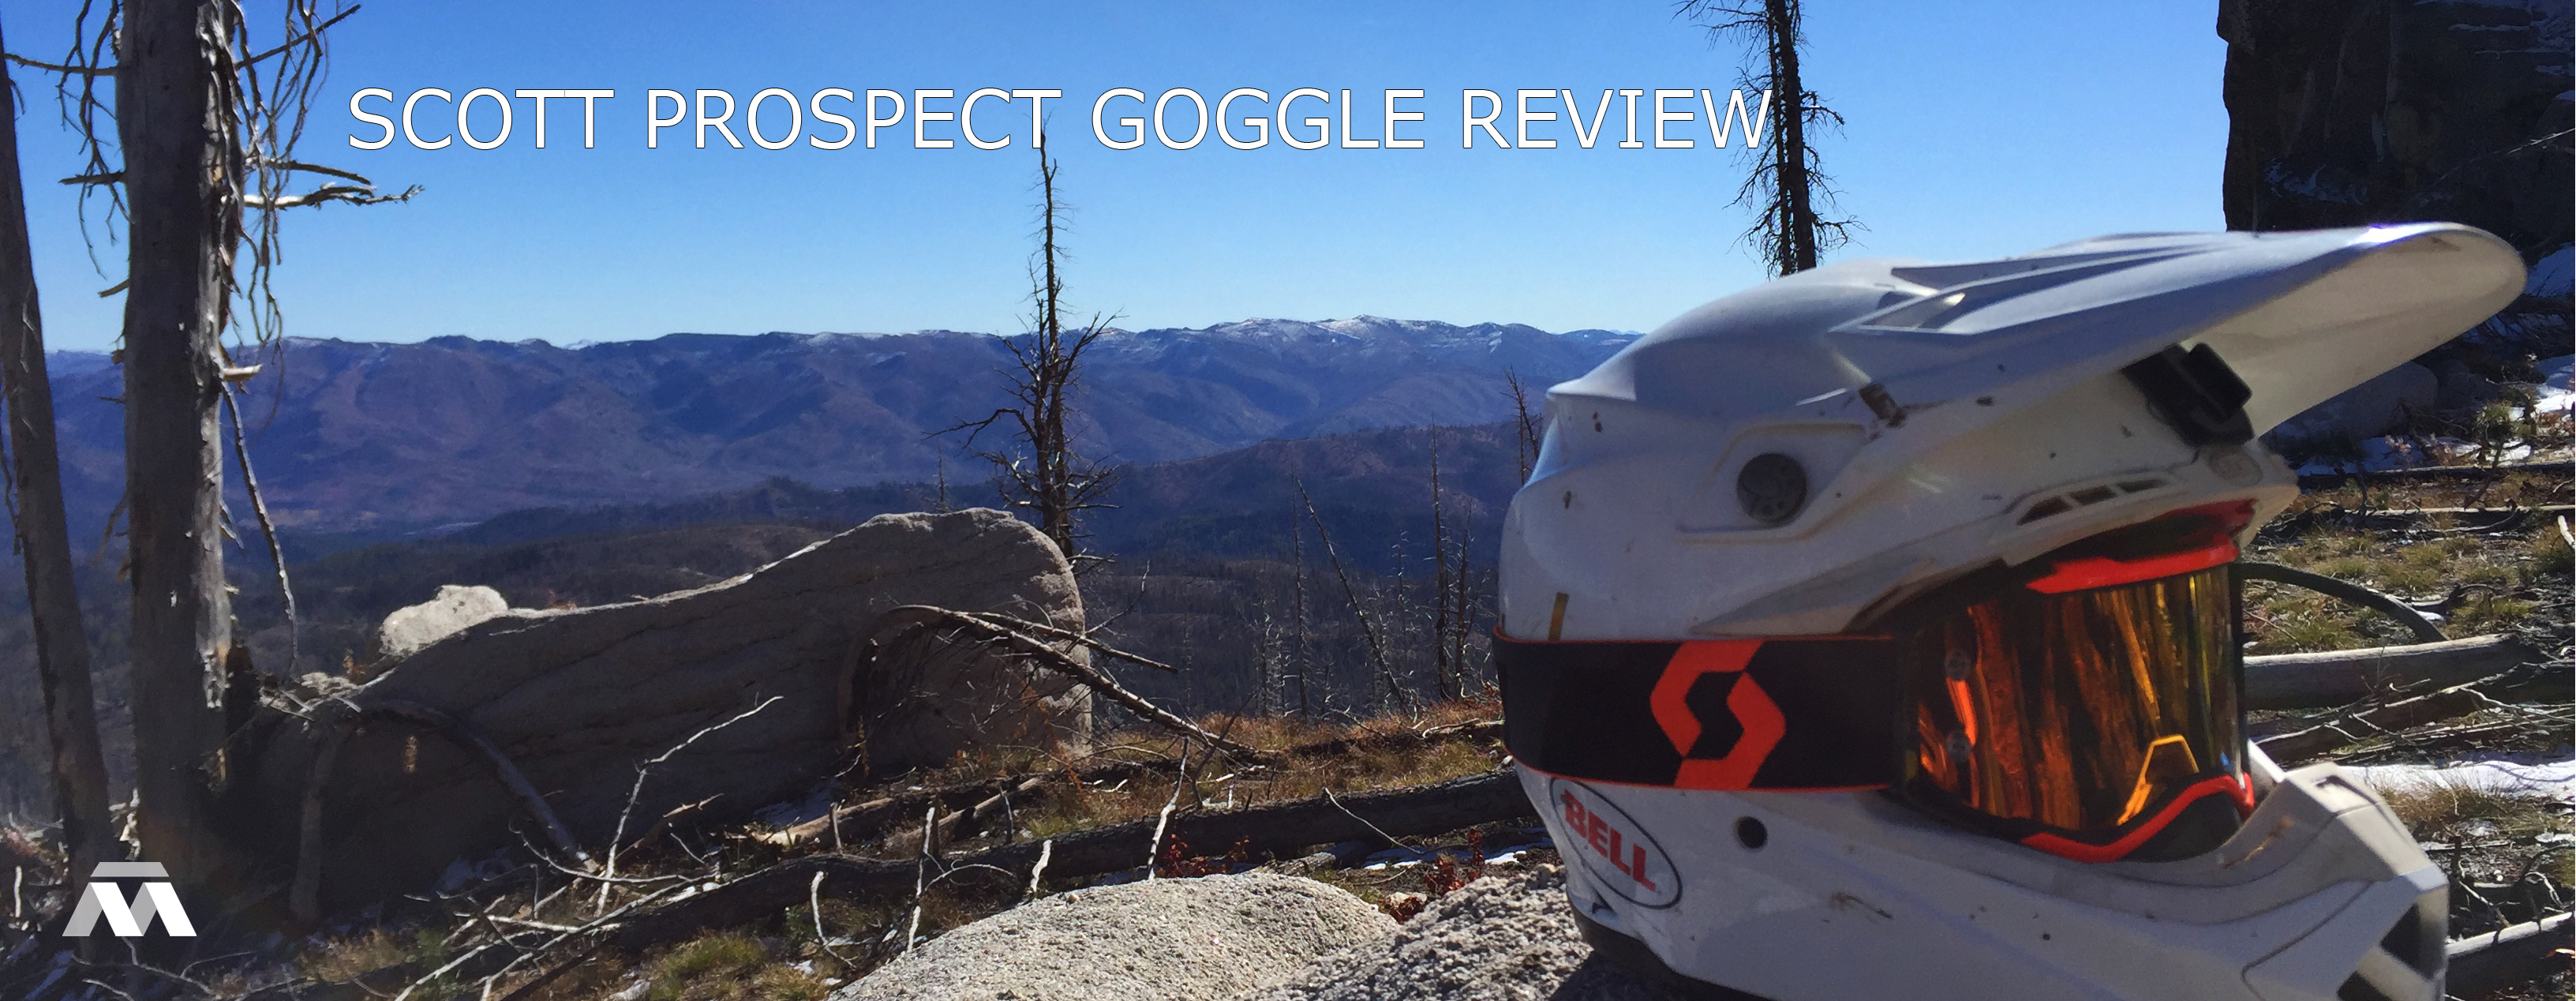 scott prospect goggle review